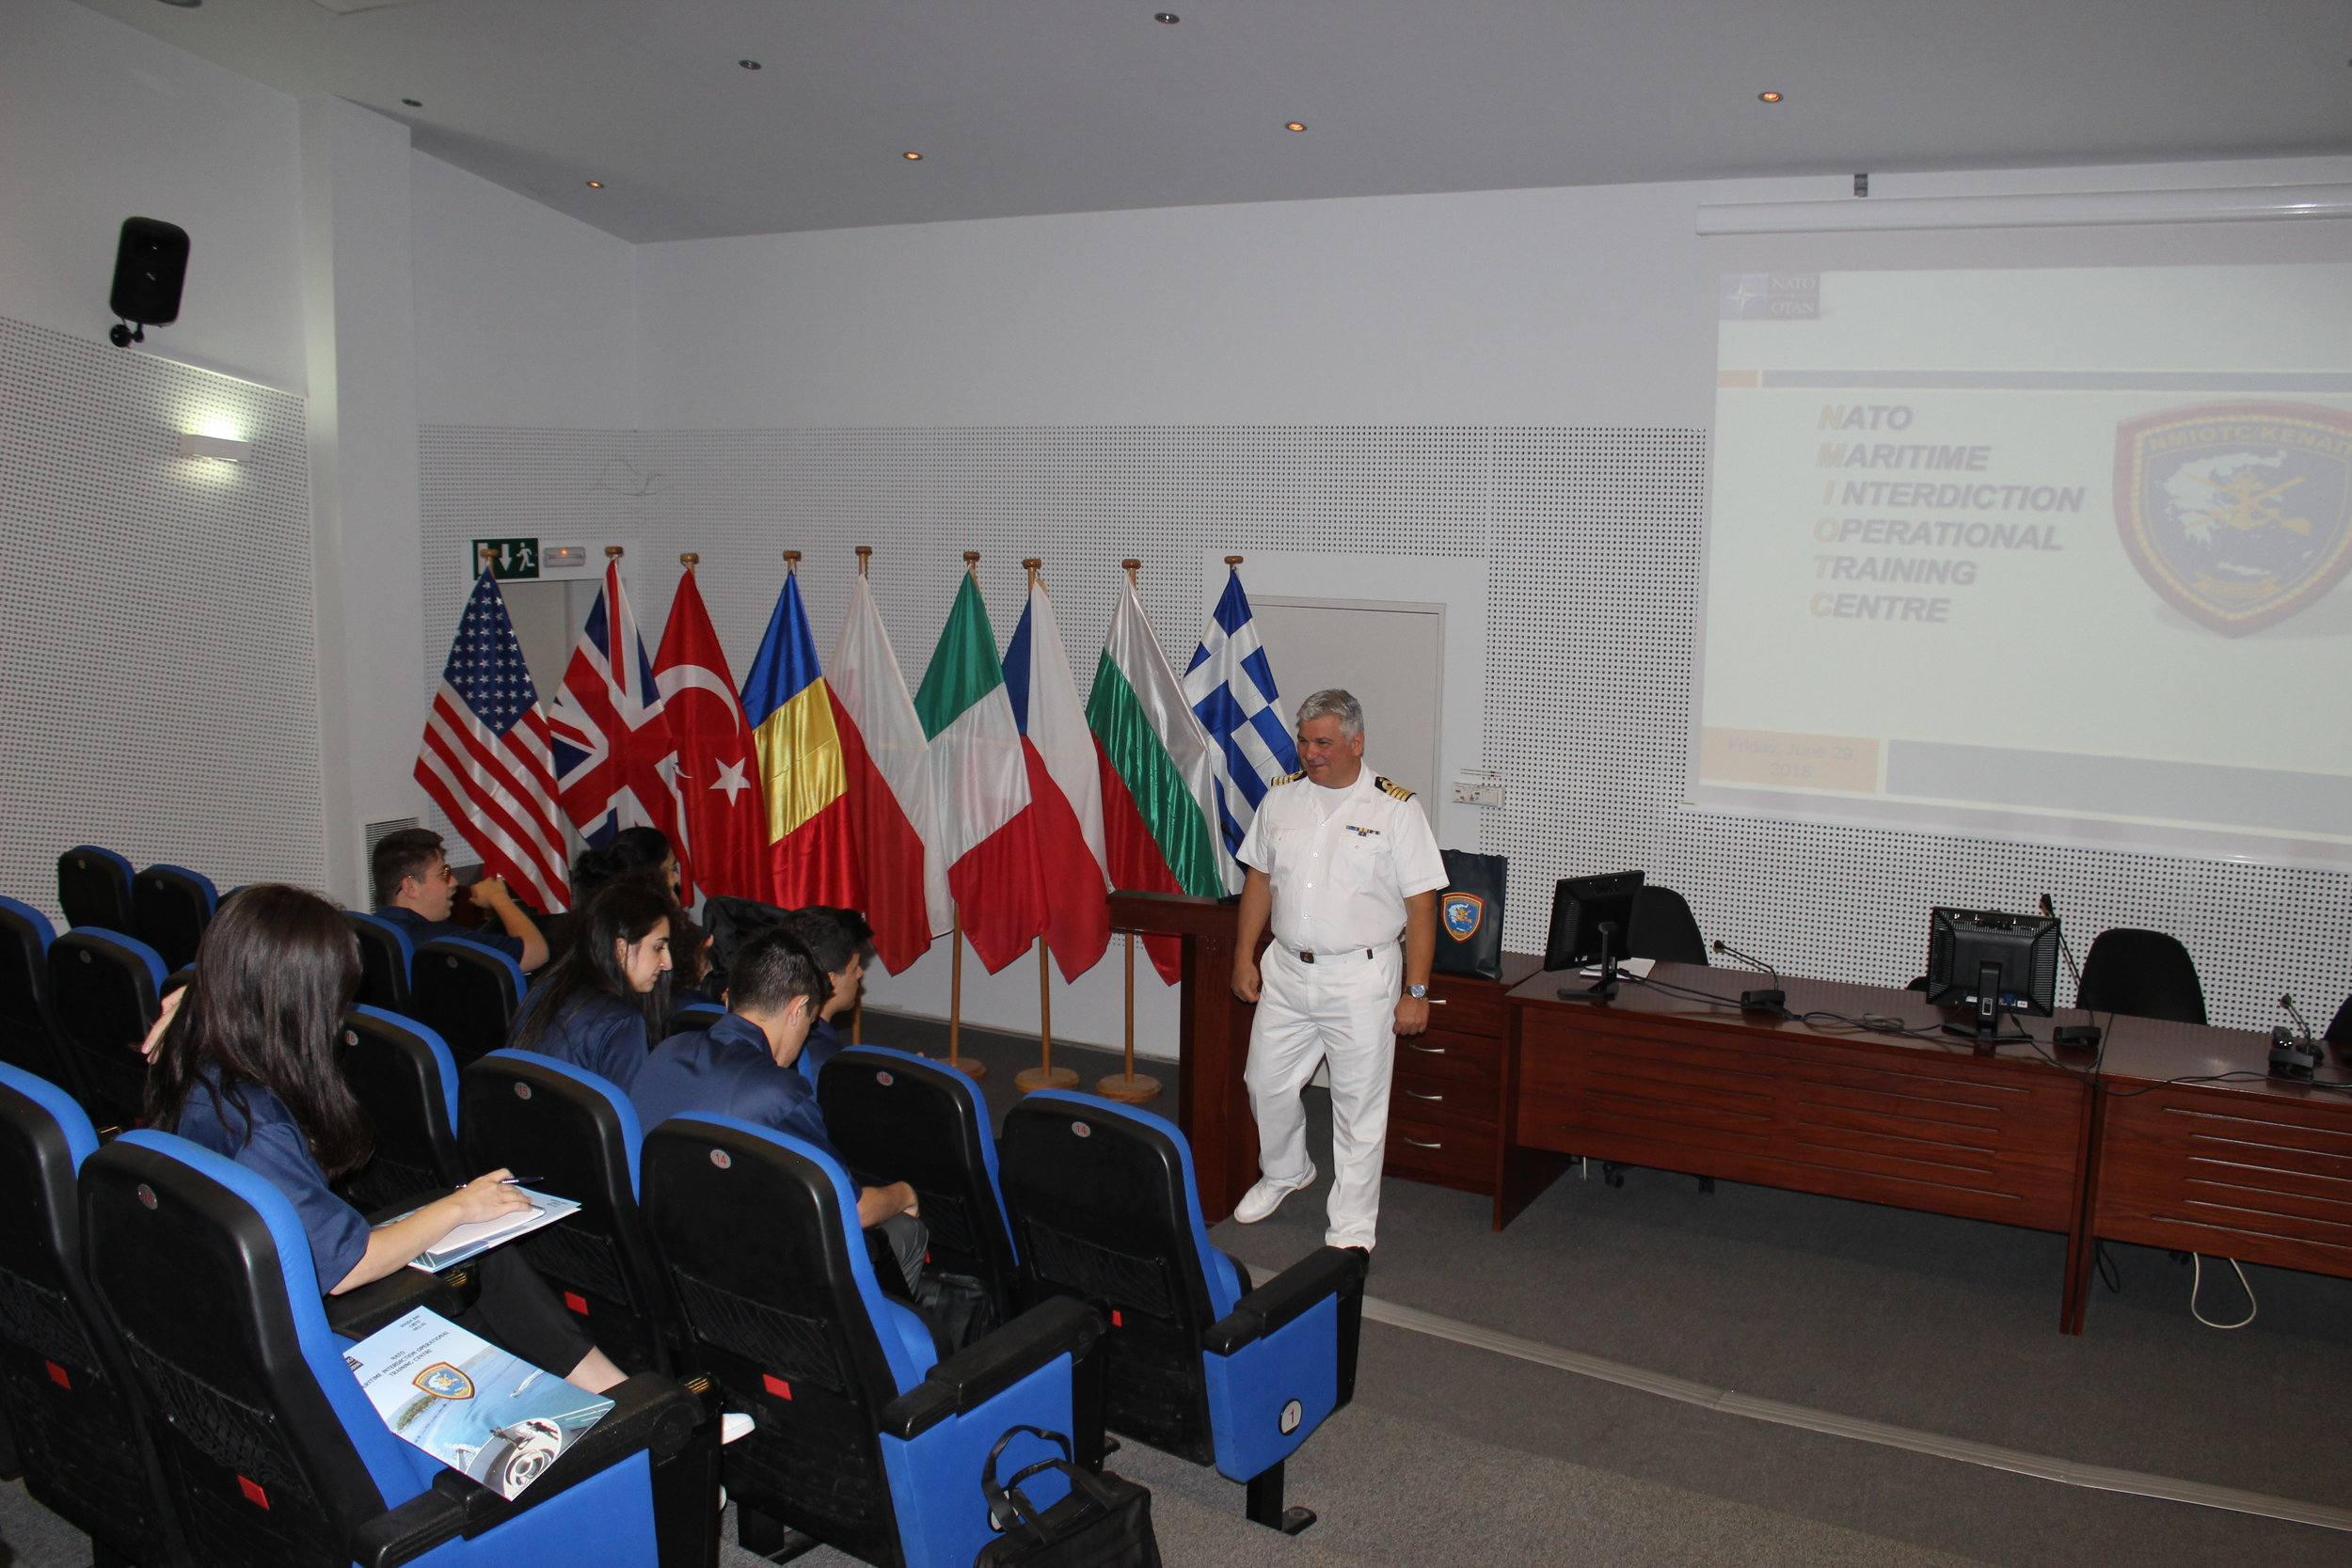 Briefing on NATO maritime interdiction training at NMIOTC.